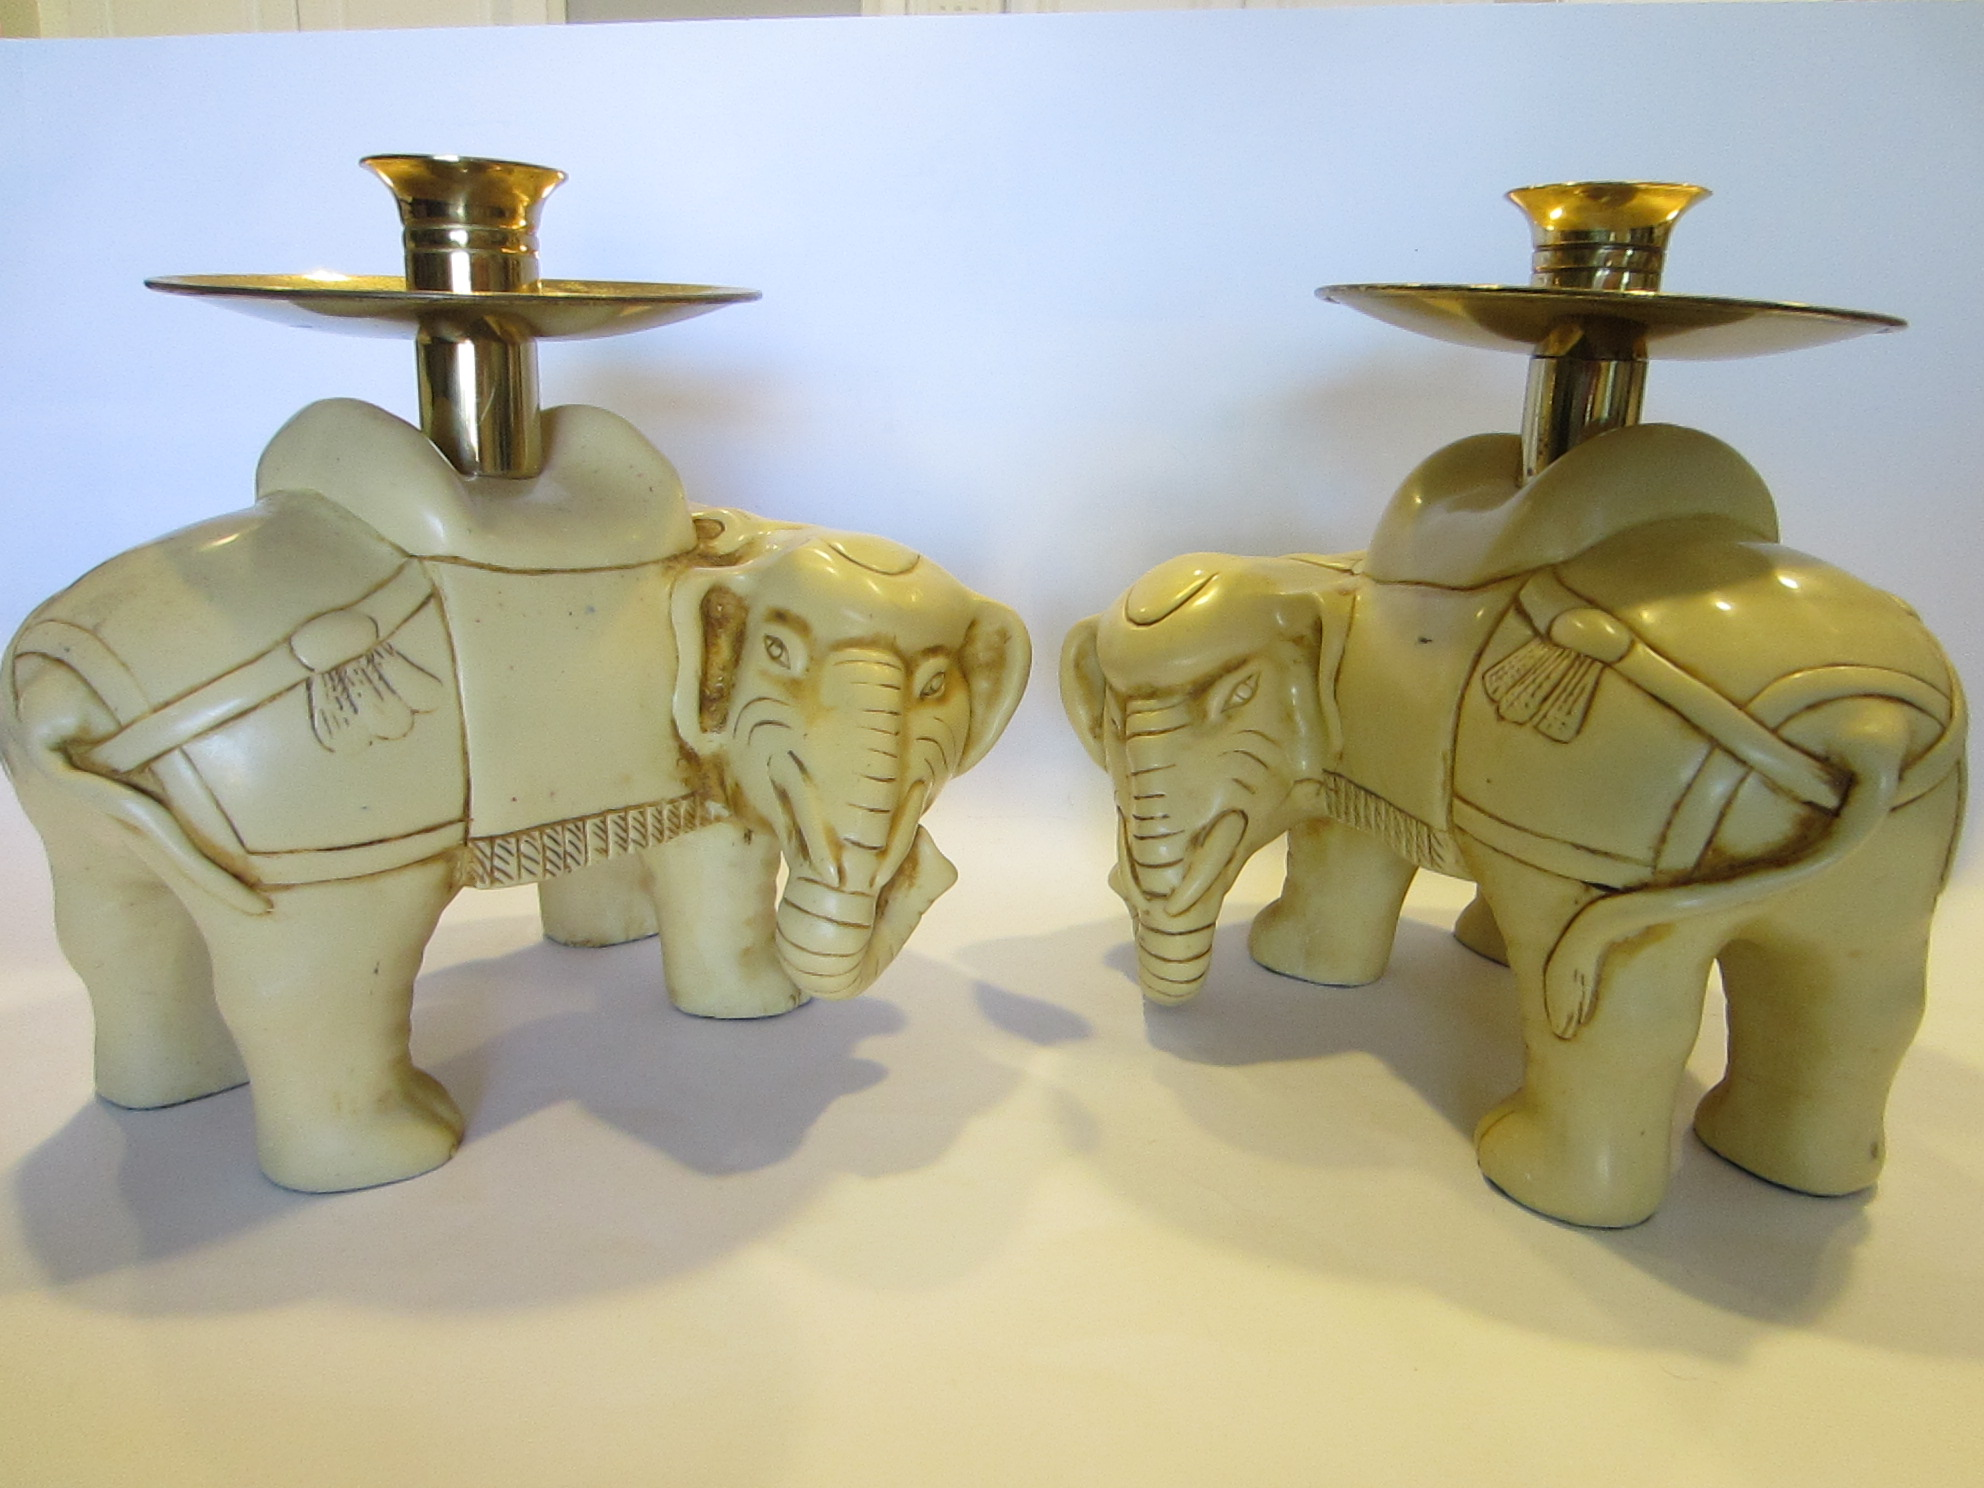 Decorative Candles For Sale Art Deco Elephants Bearing Brass Candle Holders For Sale